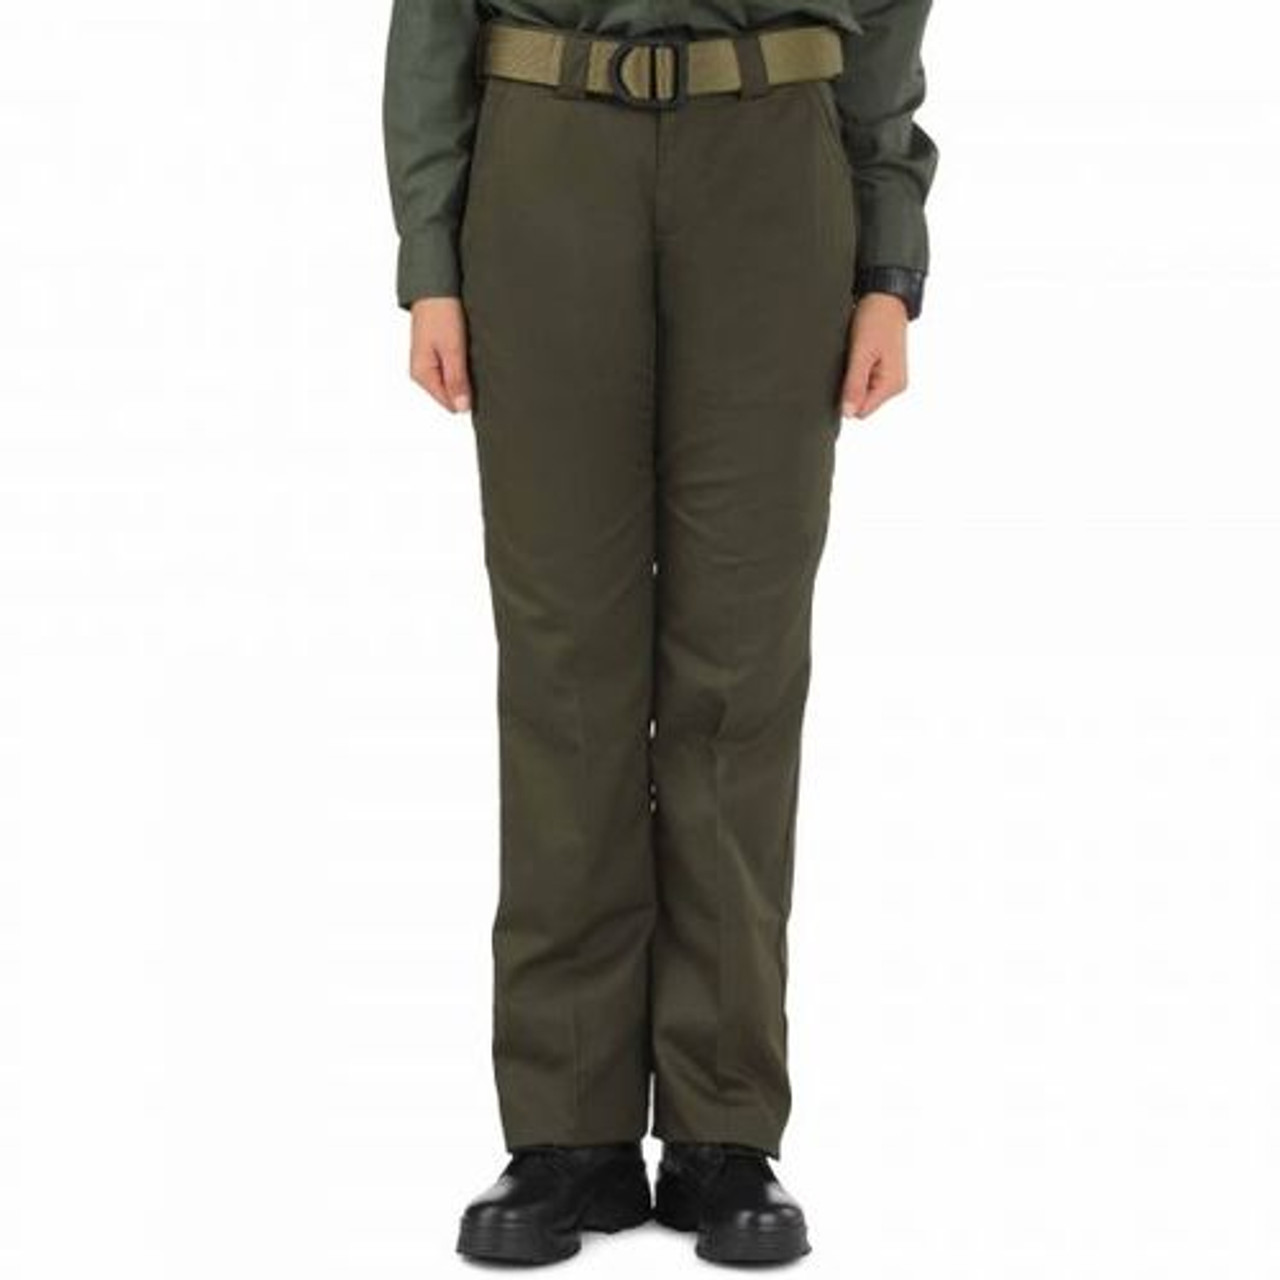 5.11 Tactical 64304 Women's Twill PDU Class-A Uniform Pants, Classic/Straight Fit, Polyester/Cotton